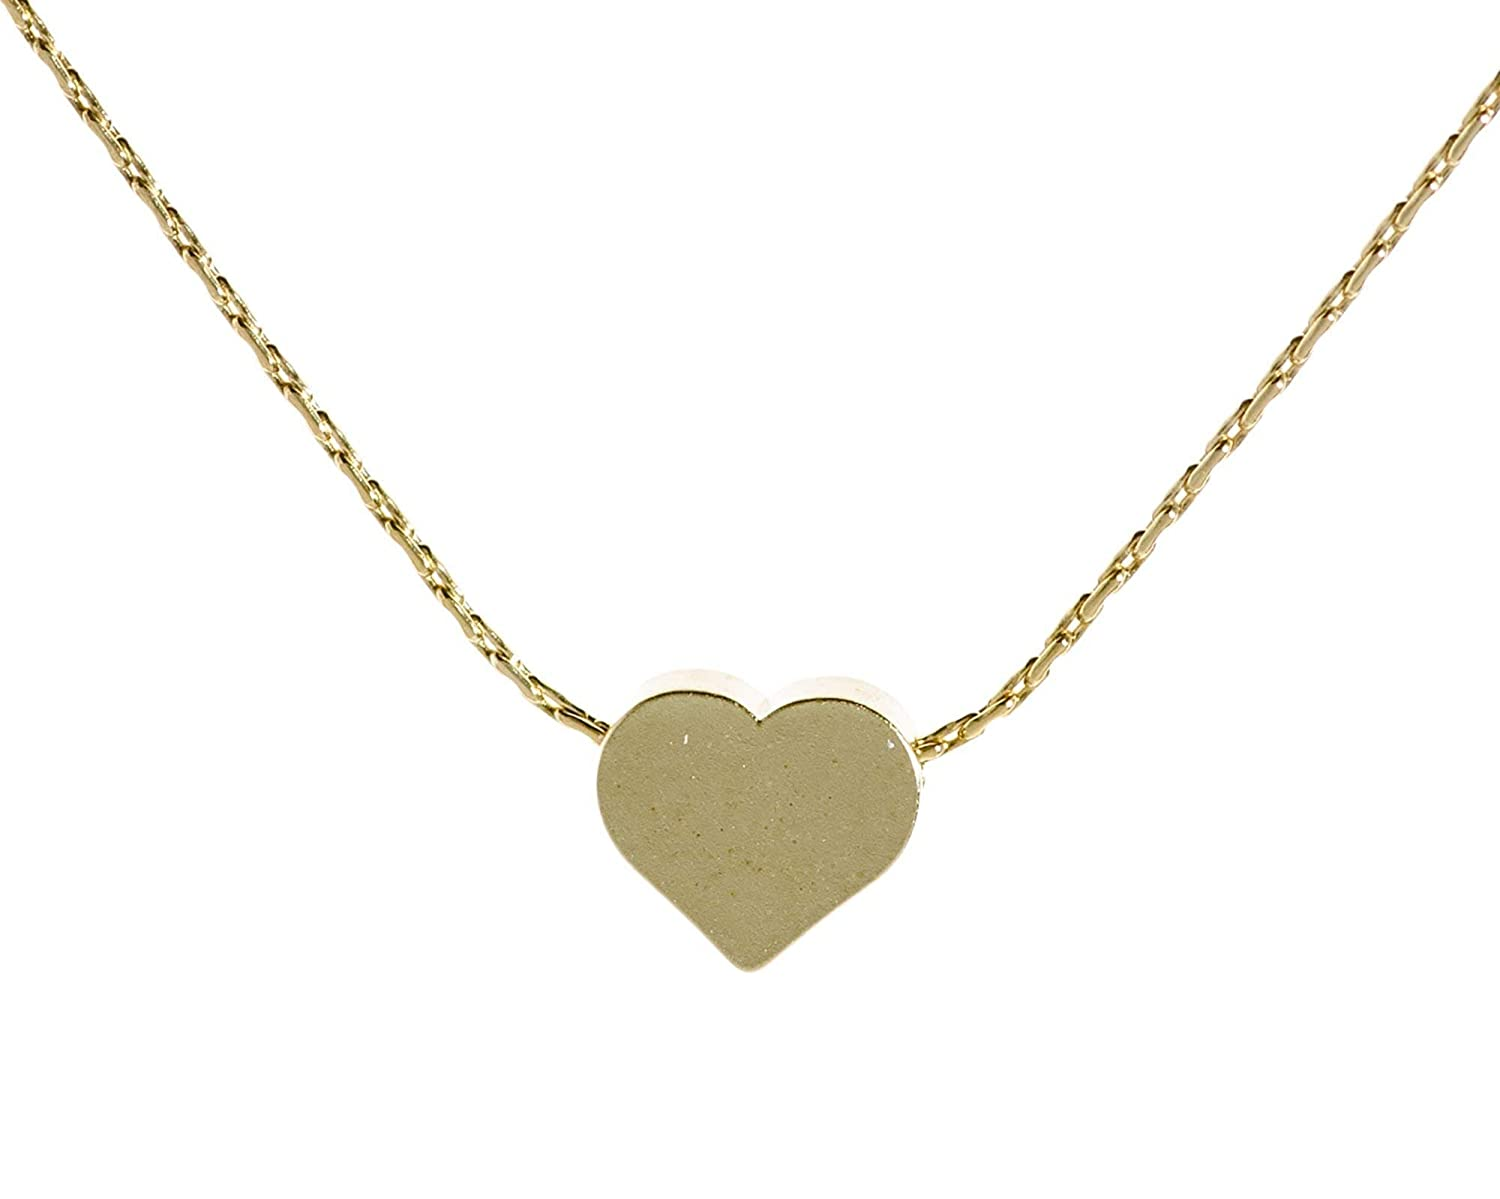 GOLD  HEART CHARM Necklace,Gold filled Heart Charm Necklace